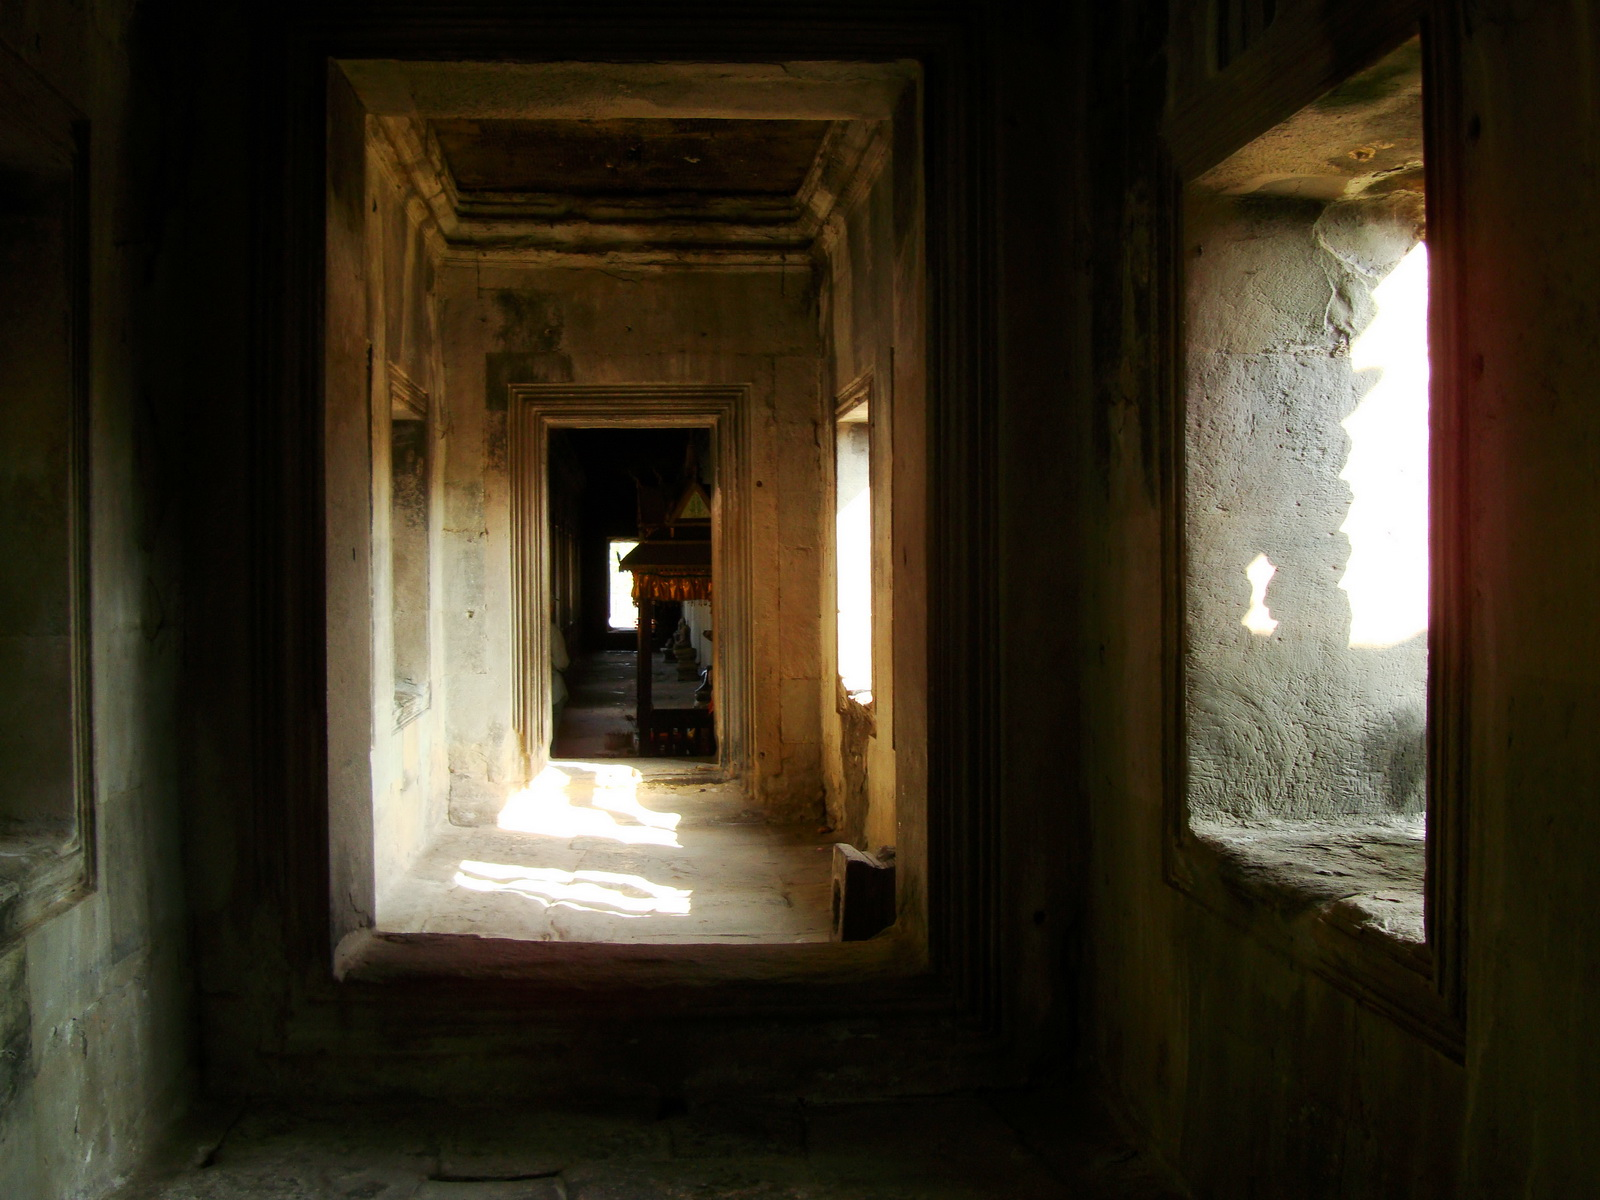 Angkor Wat inner sanctuary gallery columns and passageways 18